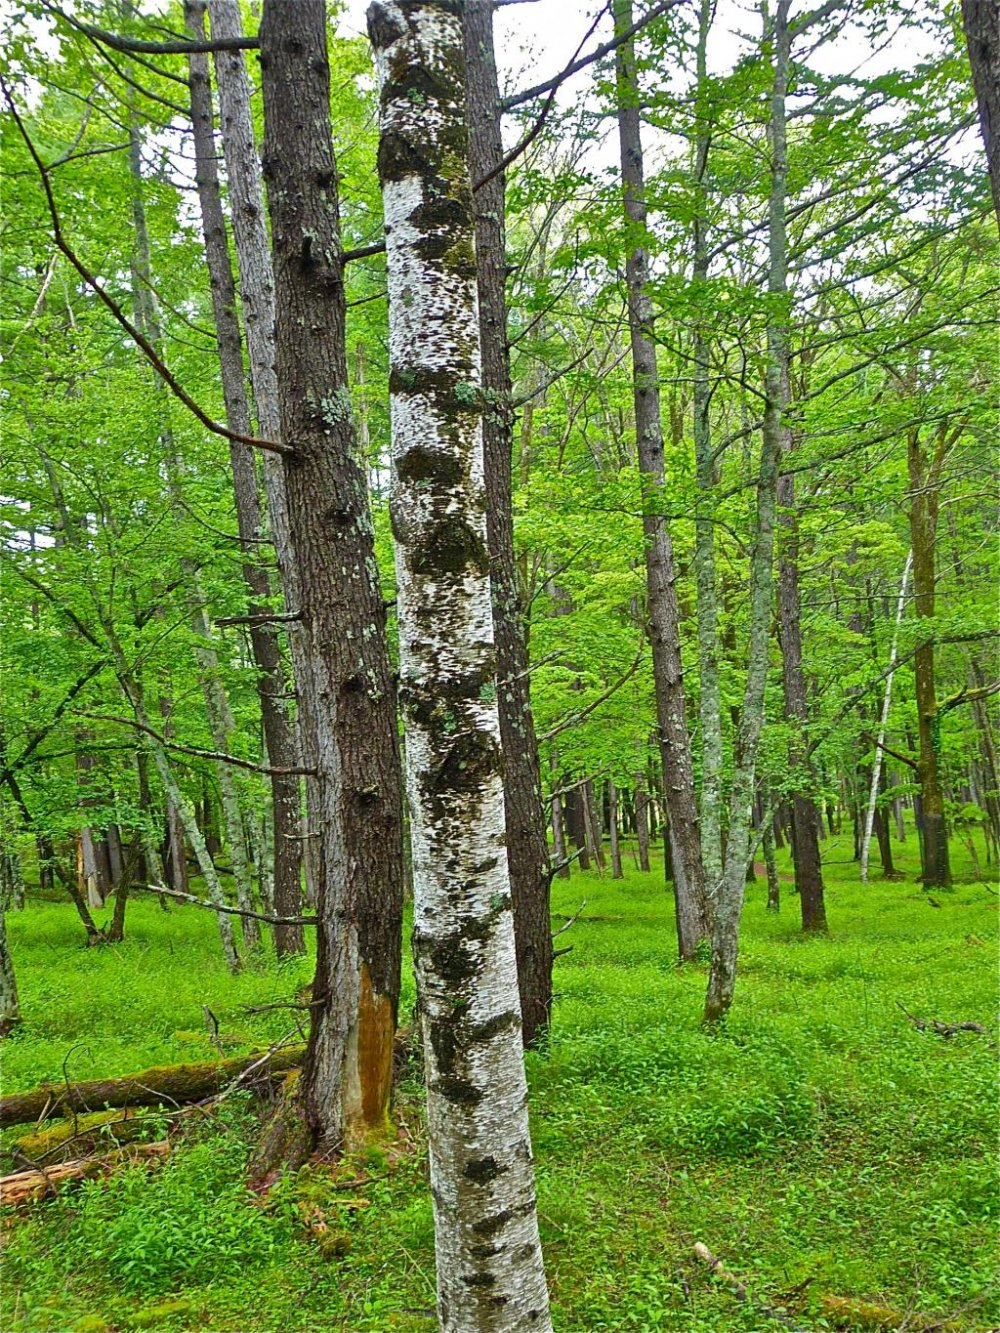 The whiteness of the birch contrasts nicely with the lush, green of  the forest